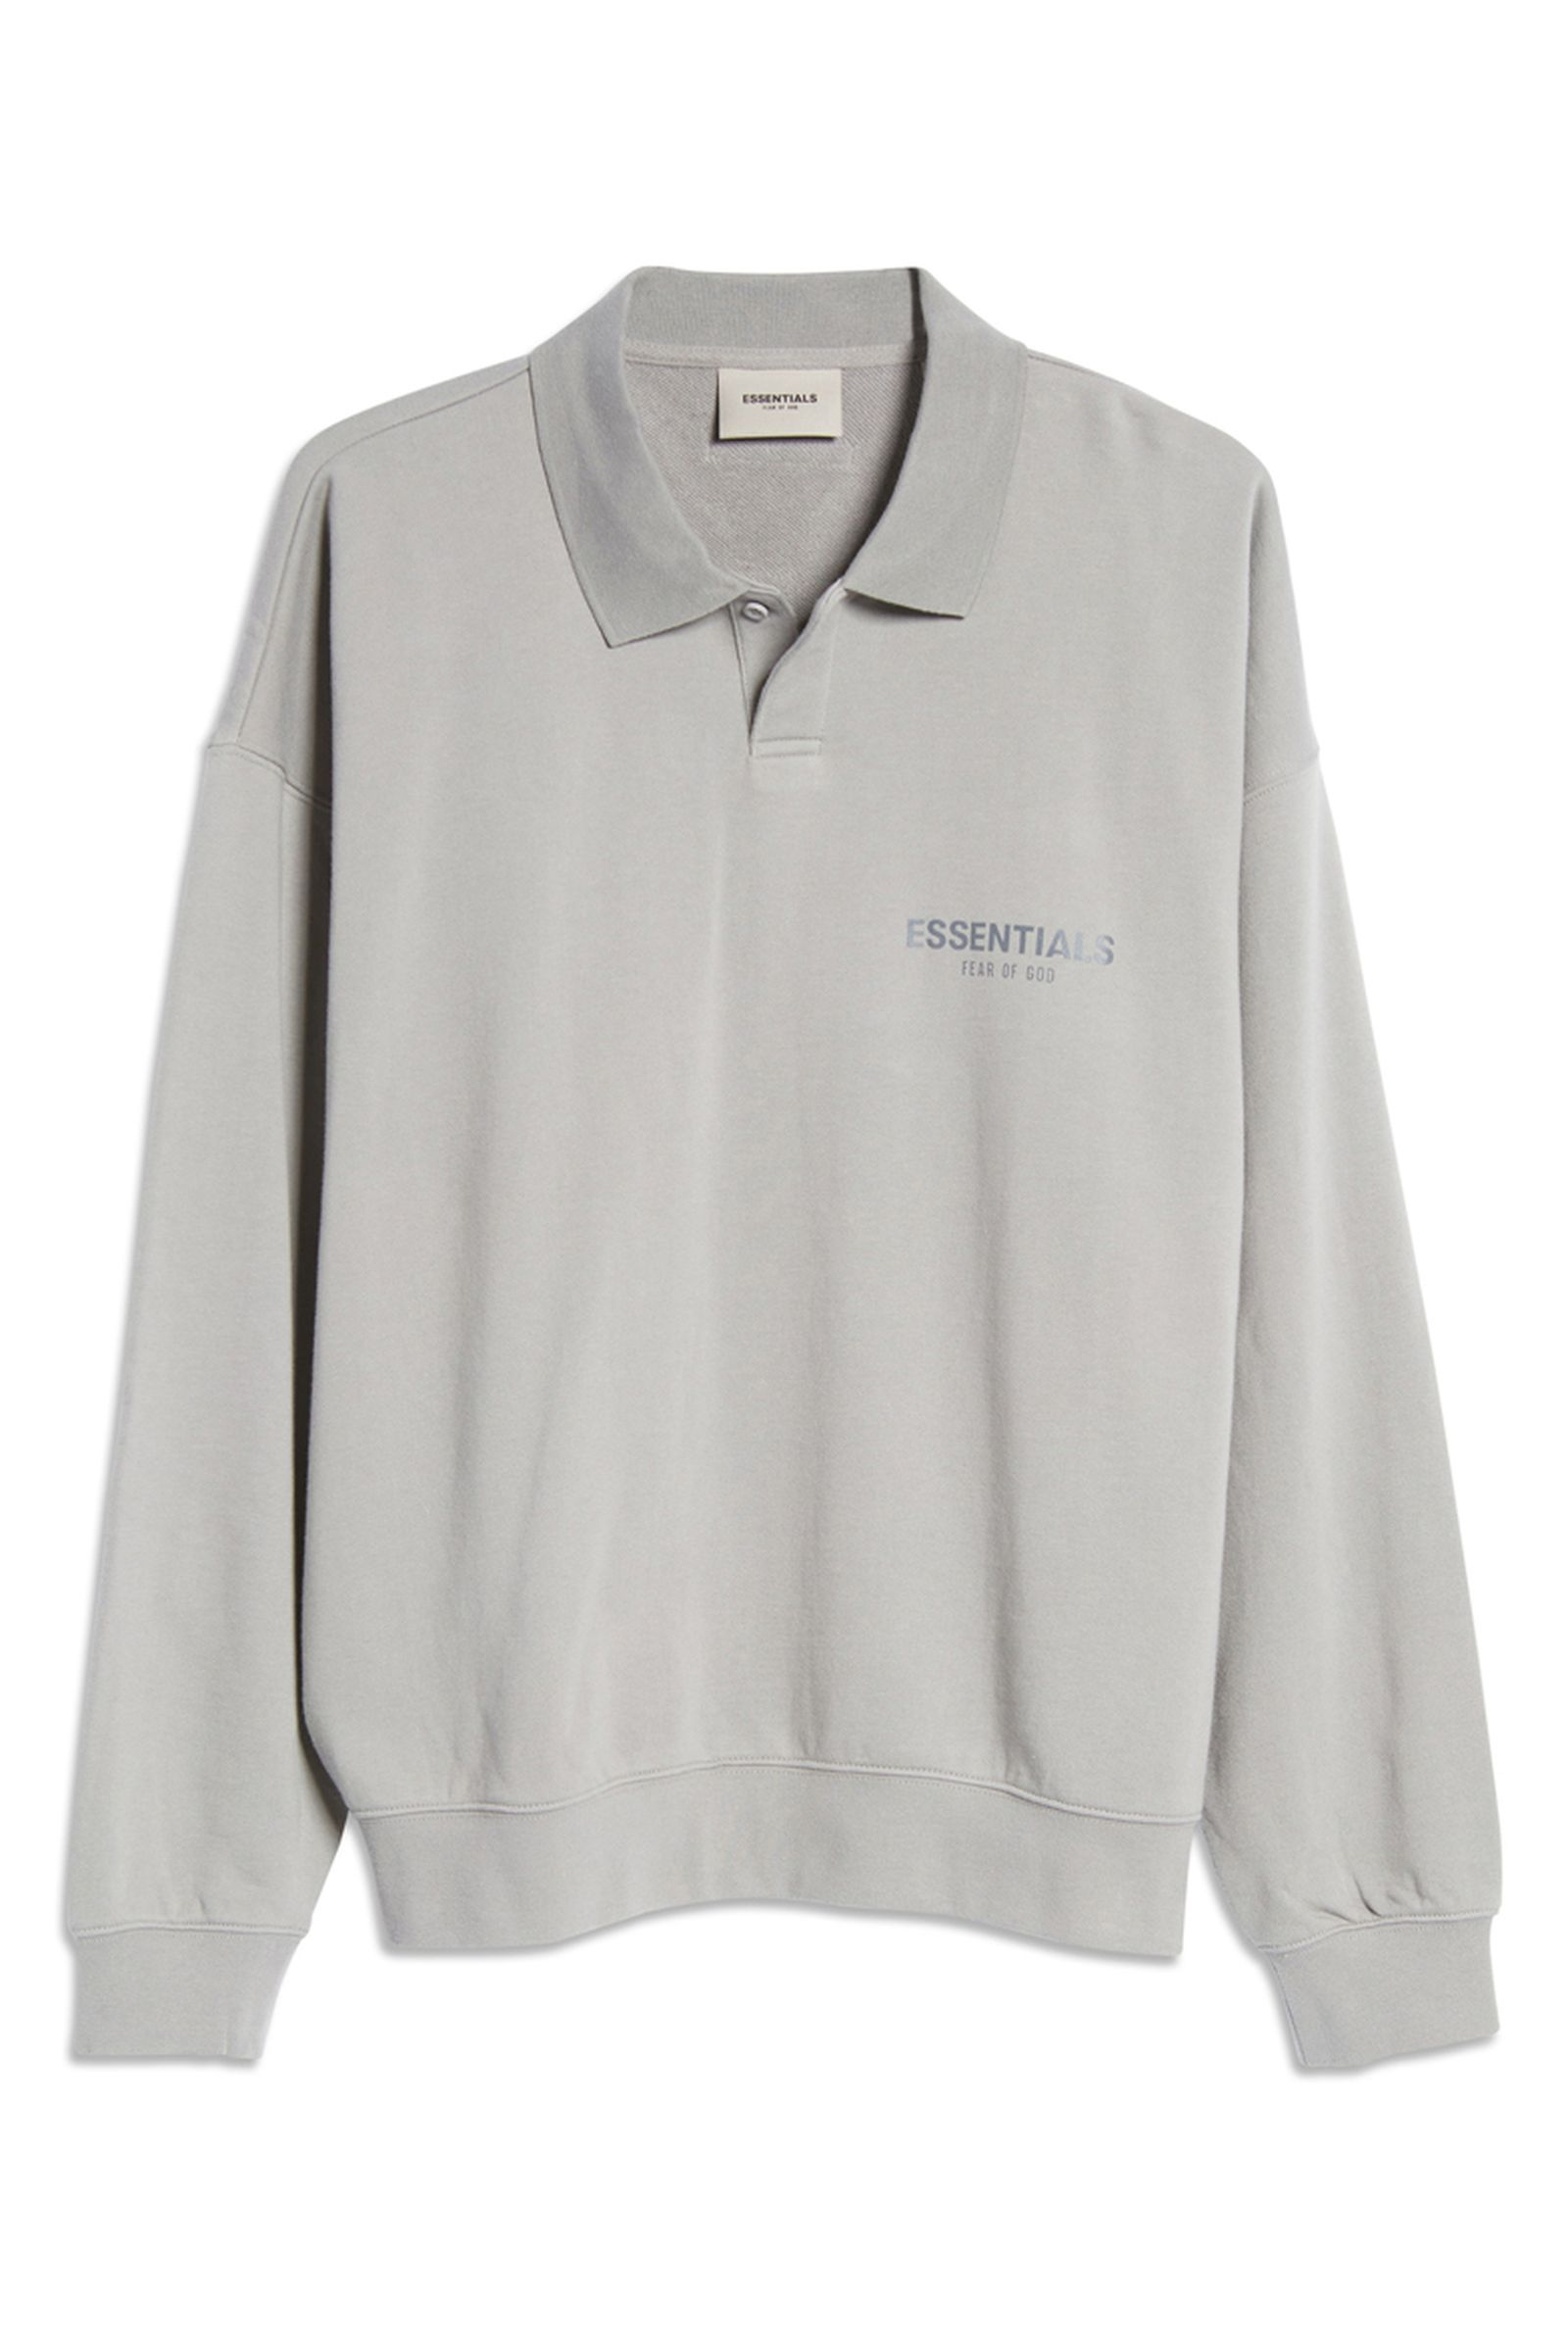 fear of god essentials nordstrom exclusive (8)